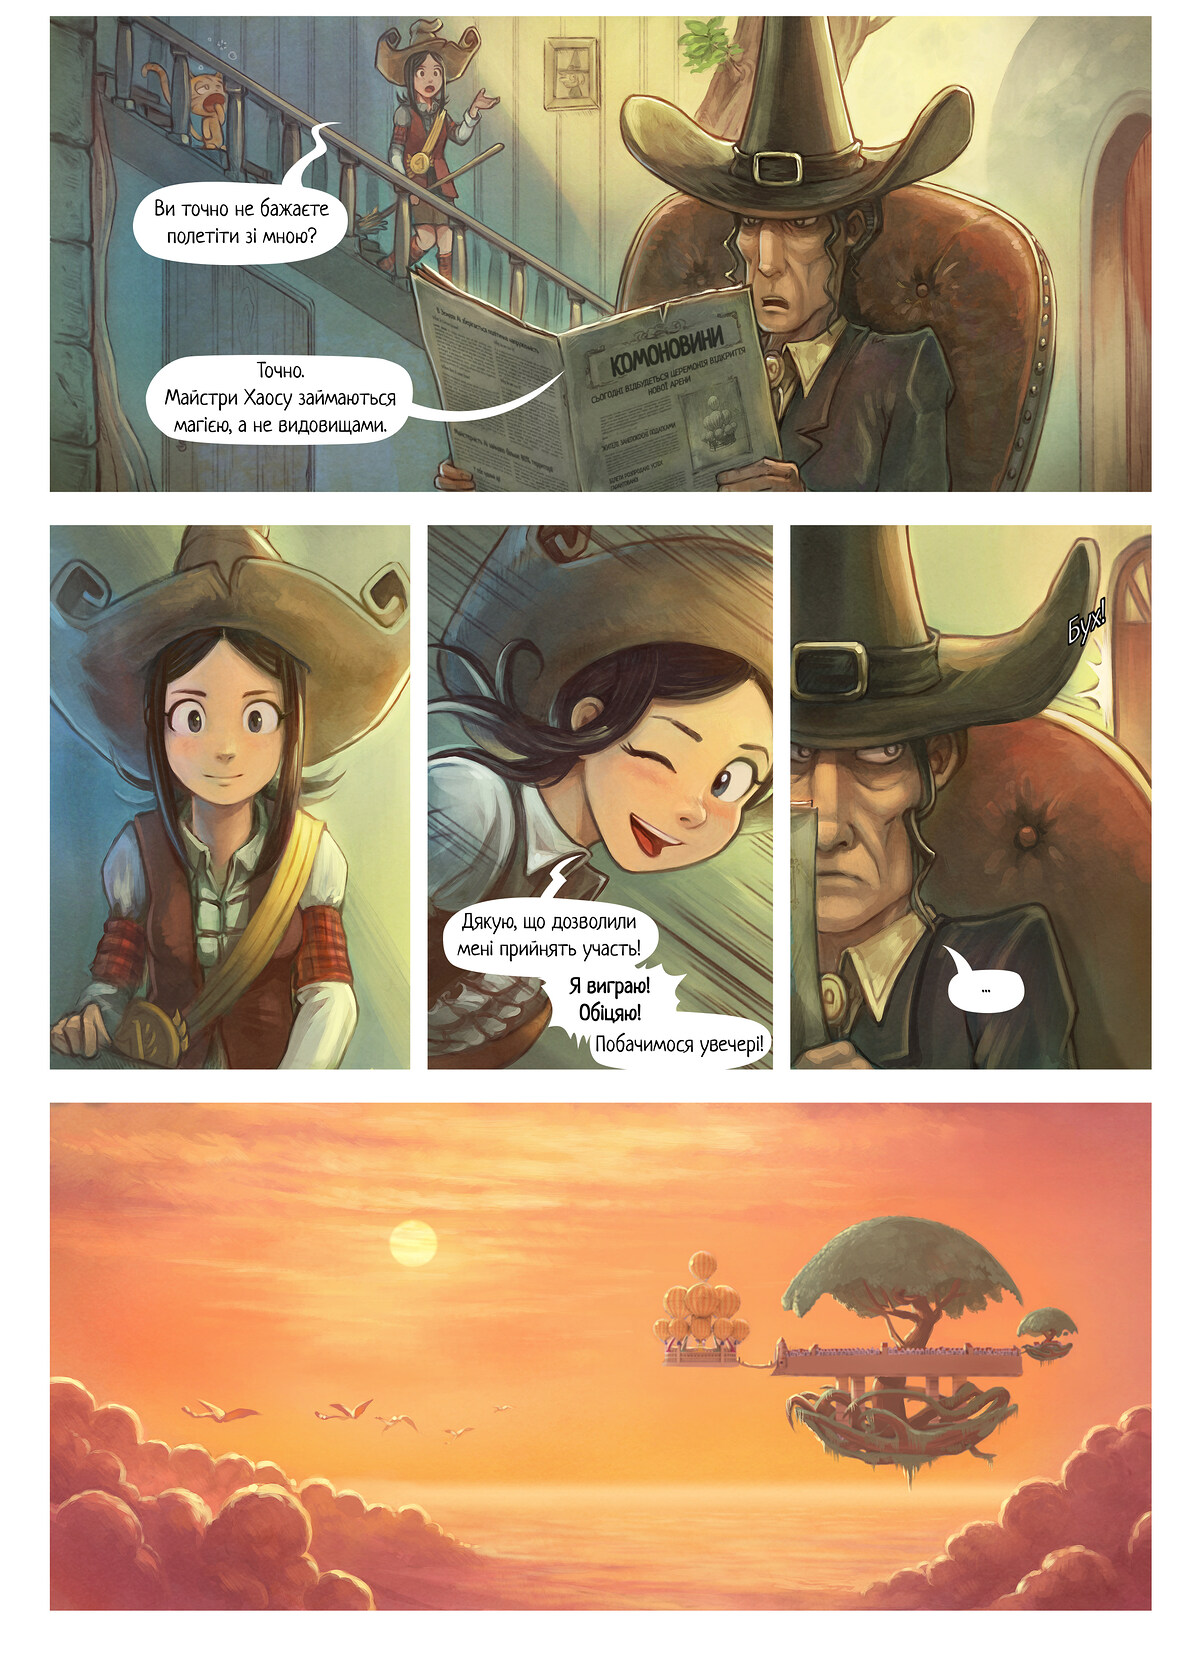 A webcomic page of Pepper&Carrot, епізод 21 [uk], стор. 2